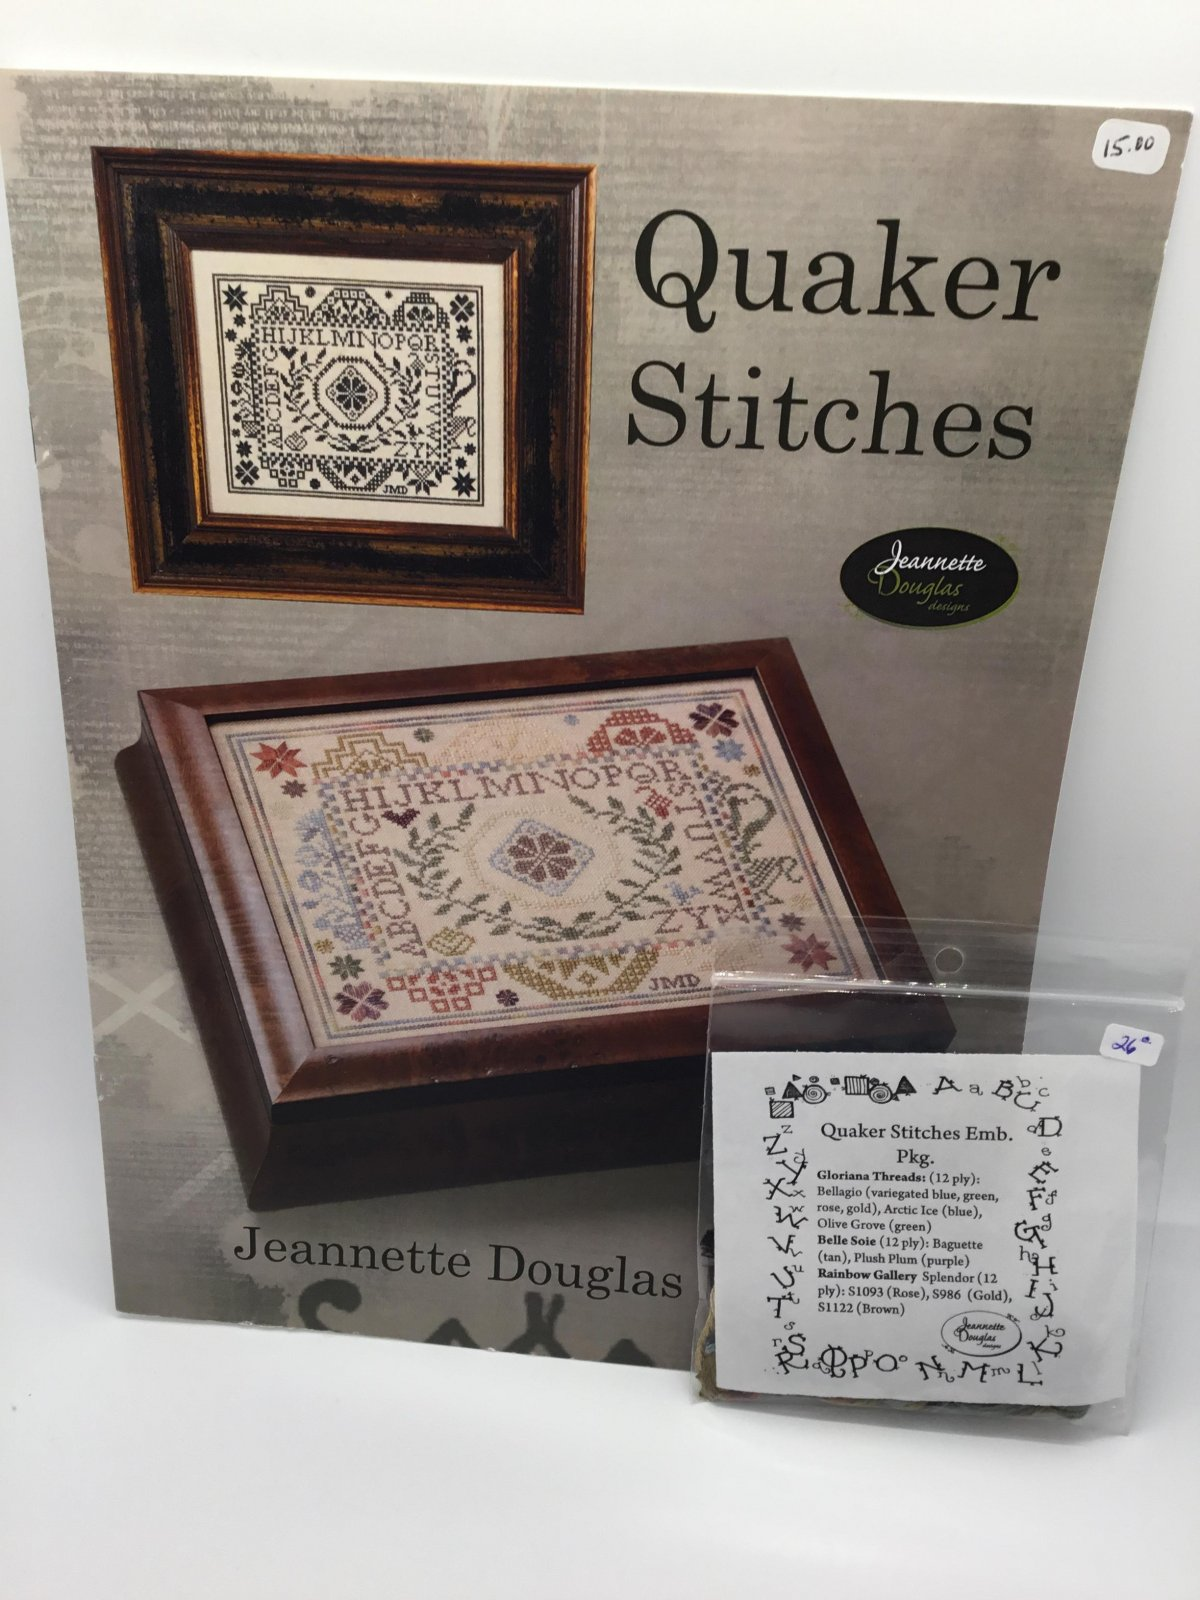 Quaker Stitches with Emb. Package